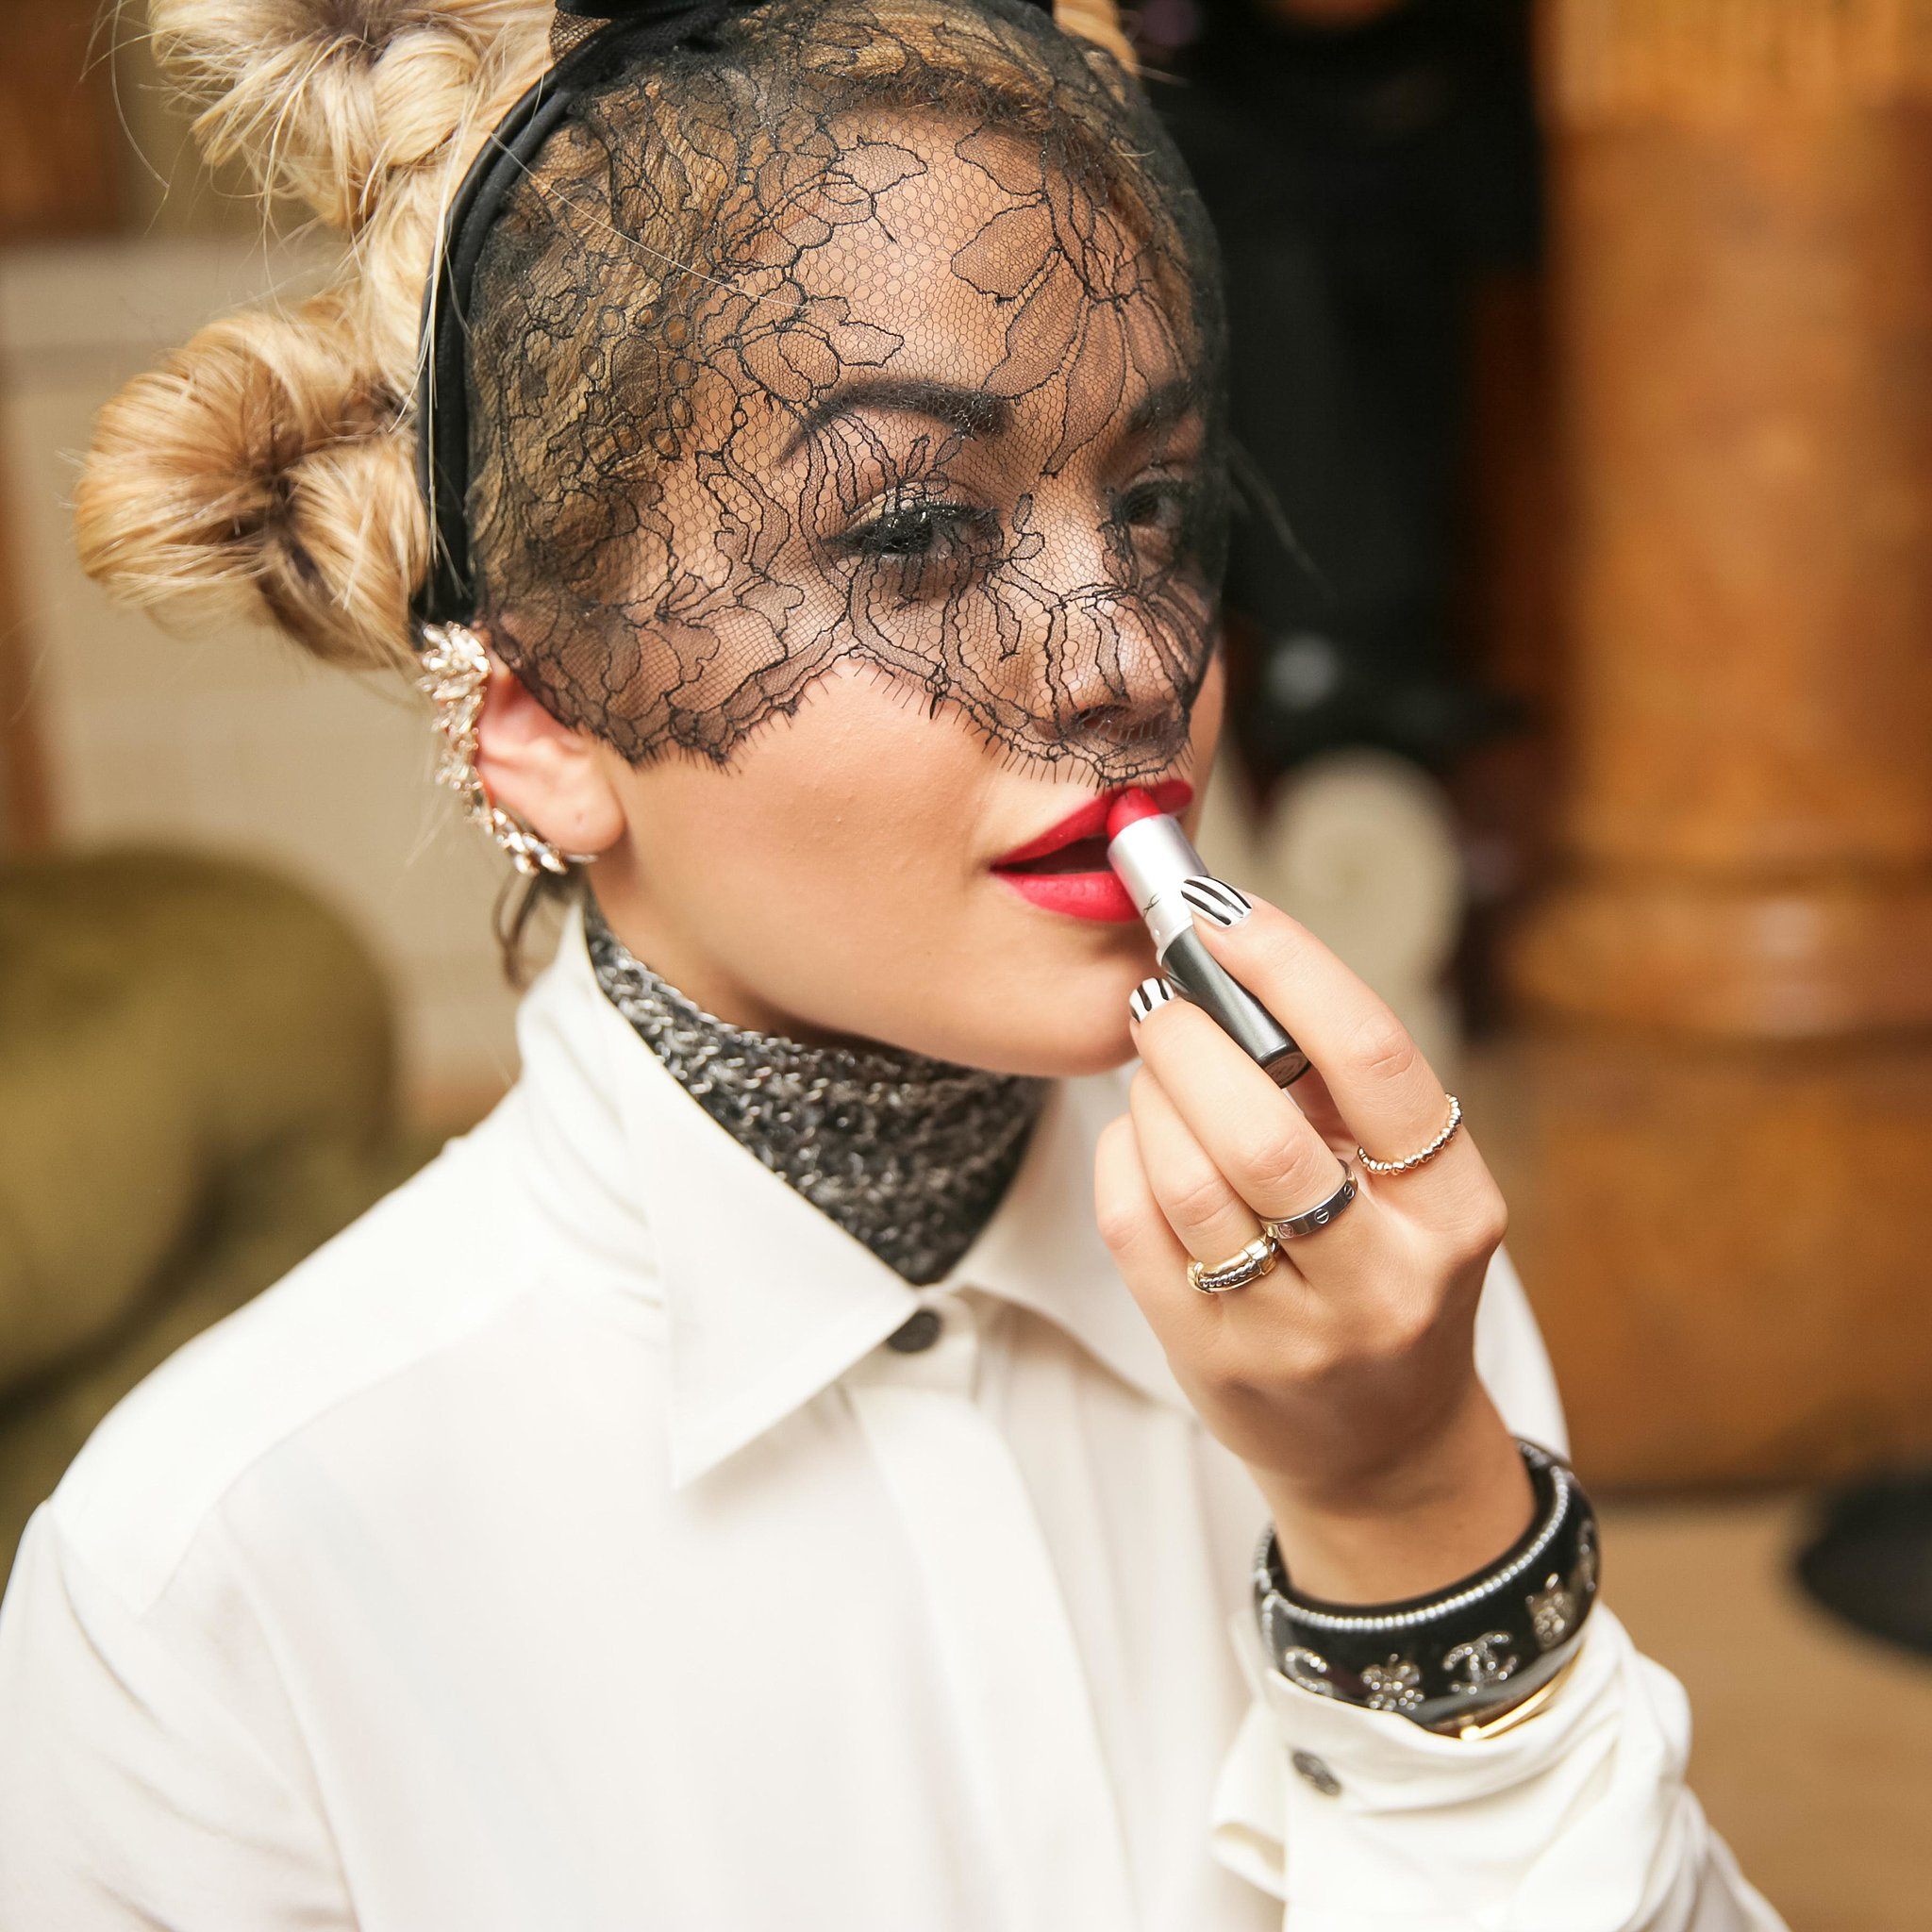 Rita Ora at the Mademoiselle C Cocktail party